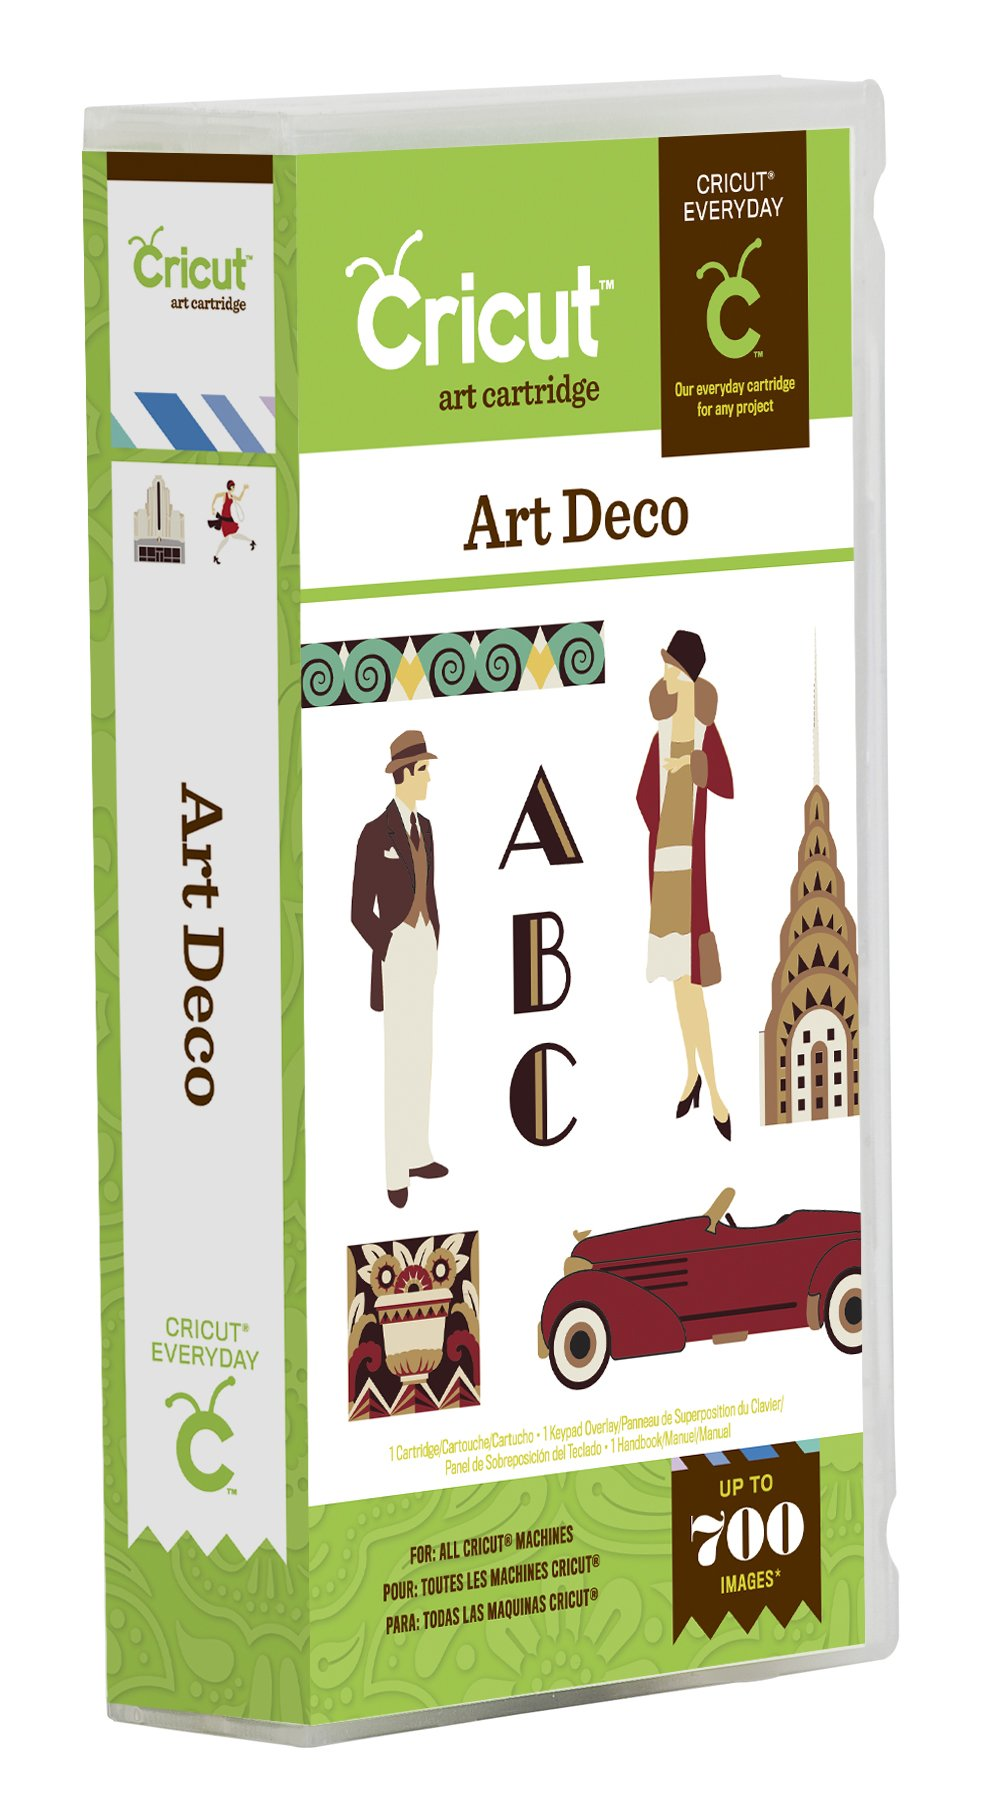 Cricut Art Deco Card Making Cartridge Arts Crafts Sewing 1000 Images About Circuit Projects On Pinterest